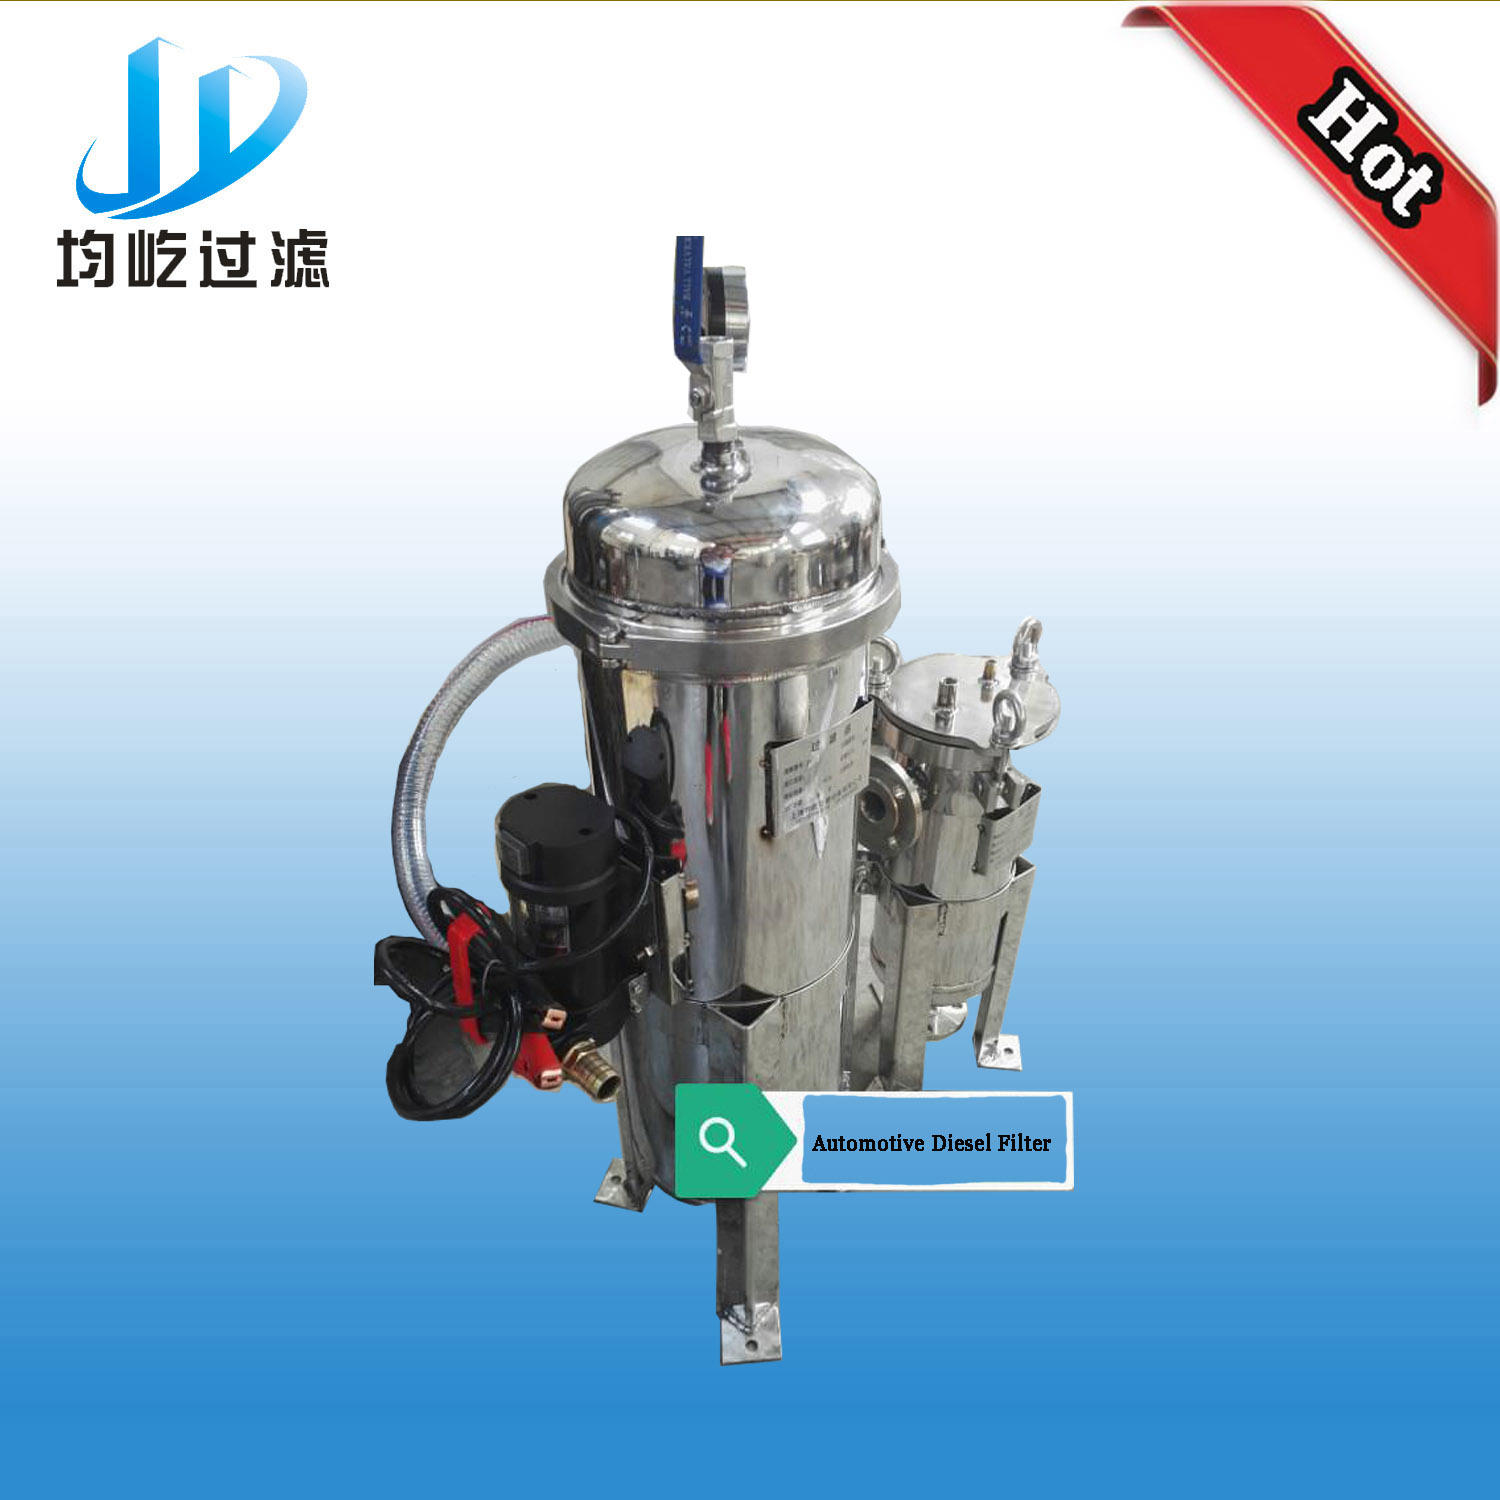 Portable Diesel Fuel Oil Filter/Purifier